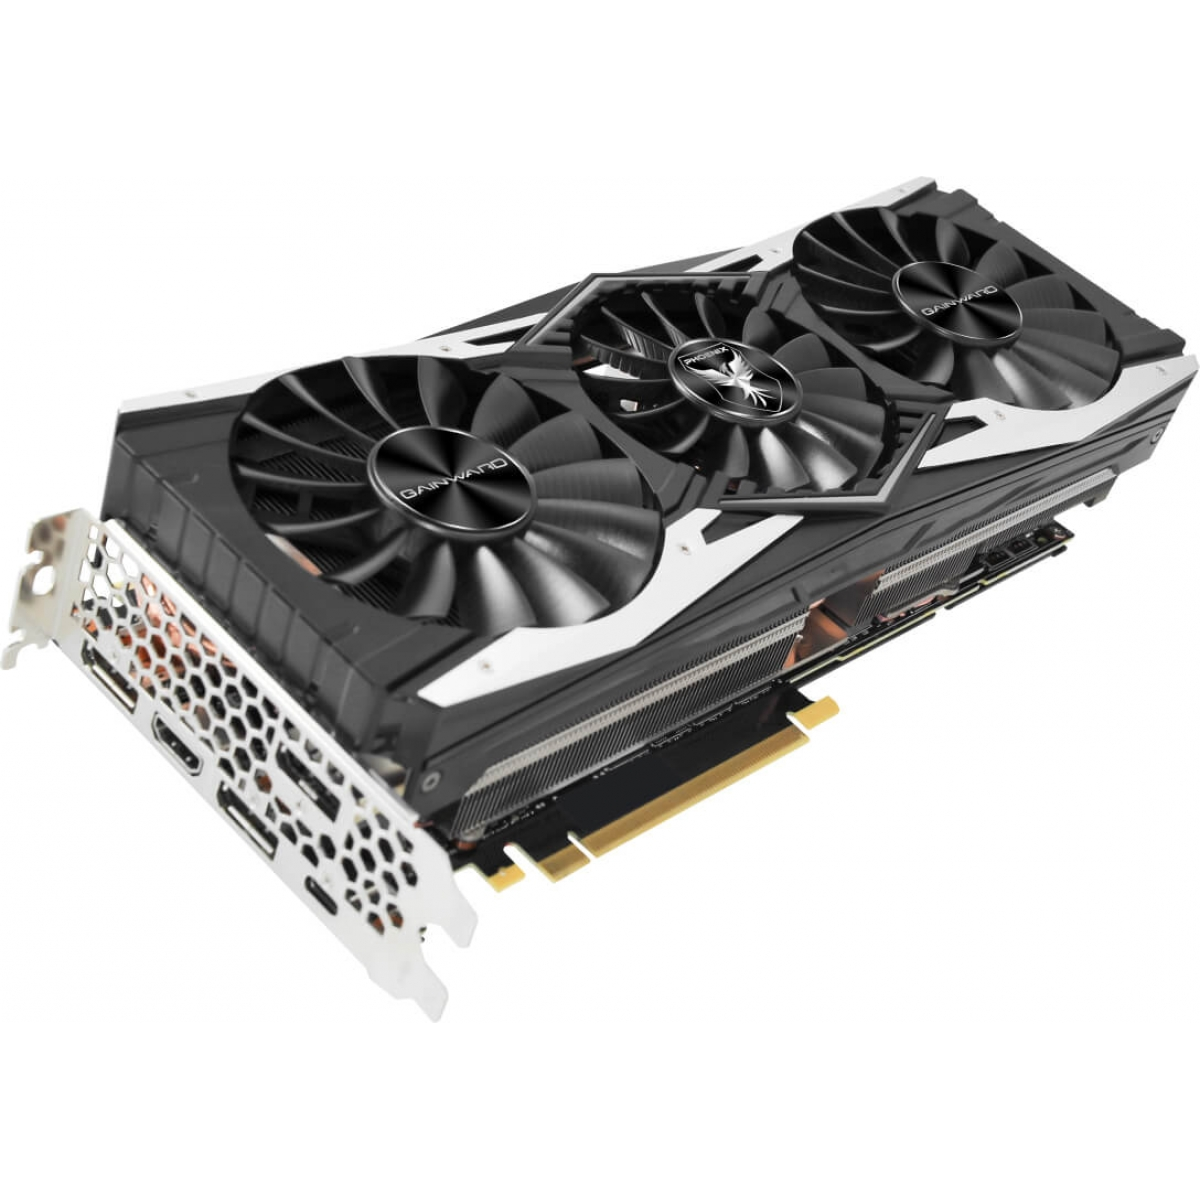 Placa De Vídeo Gainward Geforce RTX 2080 Ti Phoenix Golden Sample, 11GB GDDR6, 352Bit